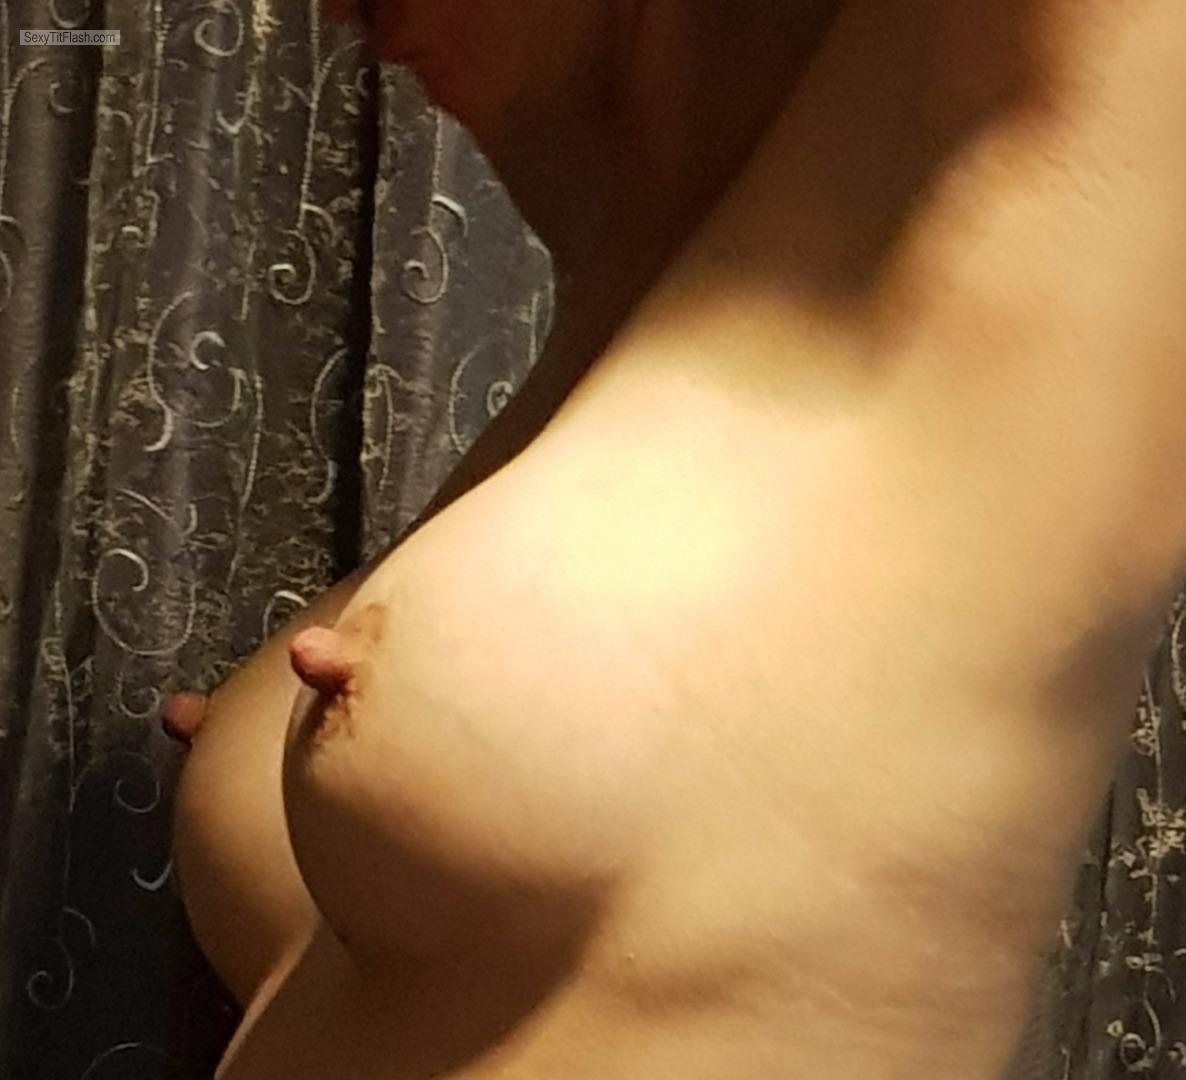 Medium Tits Of My Wife Bella